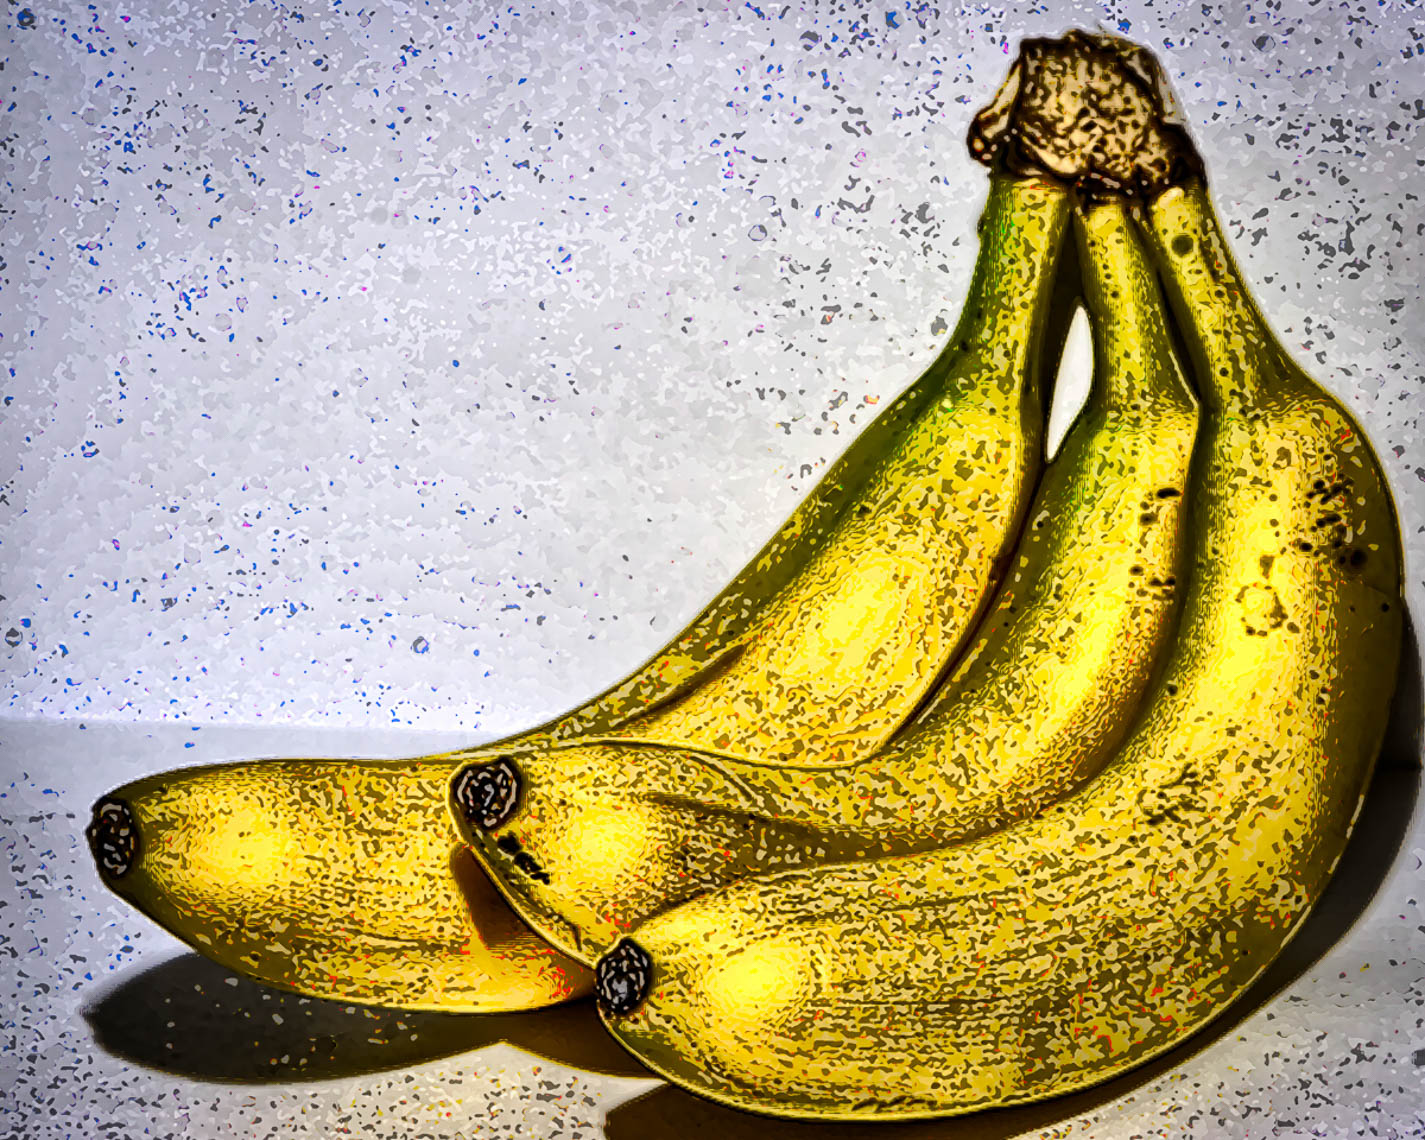 3Bananas-Tests_15-Produce